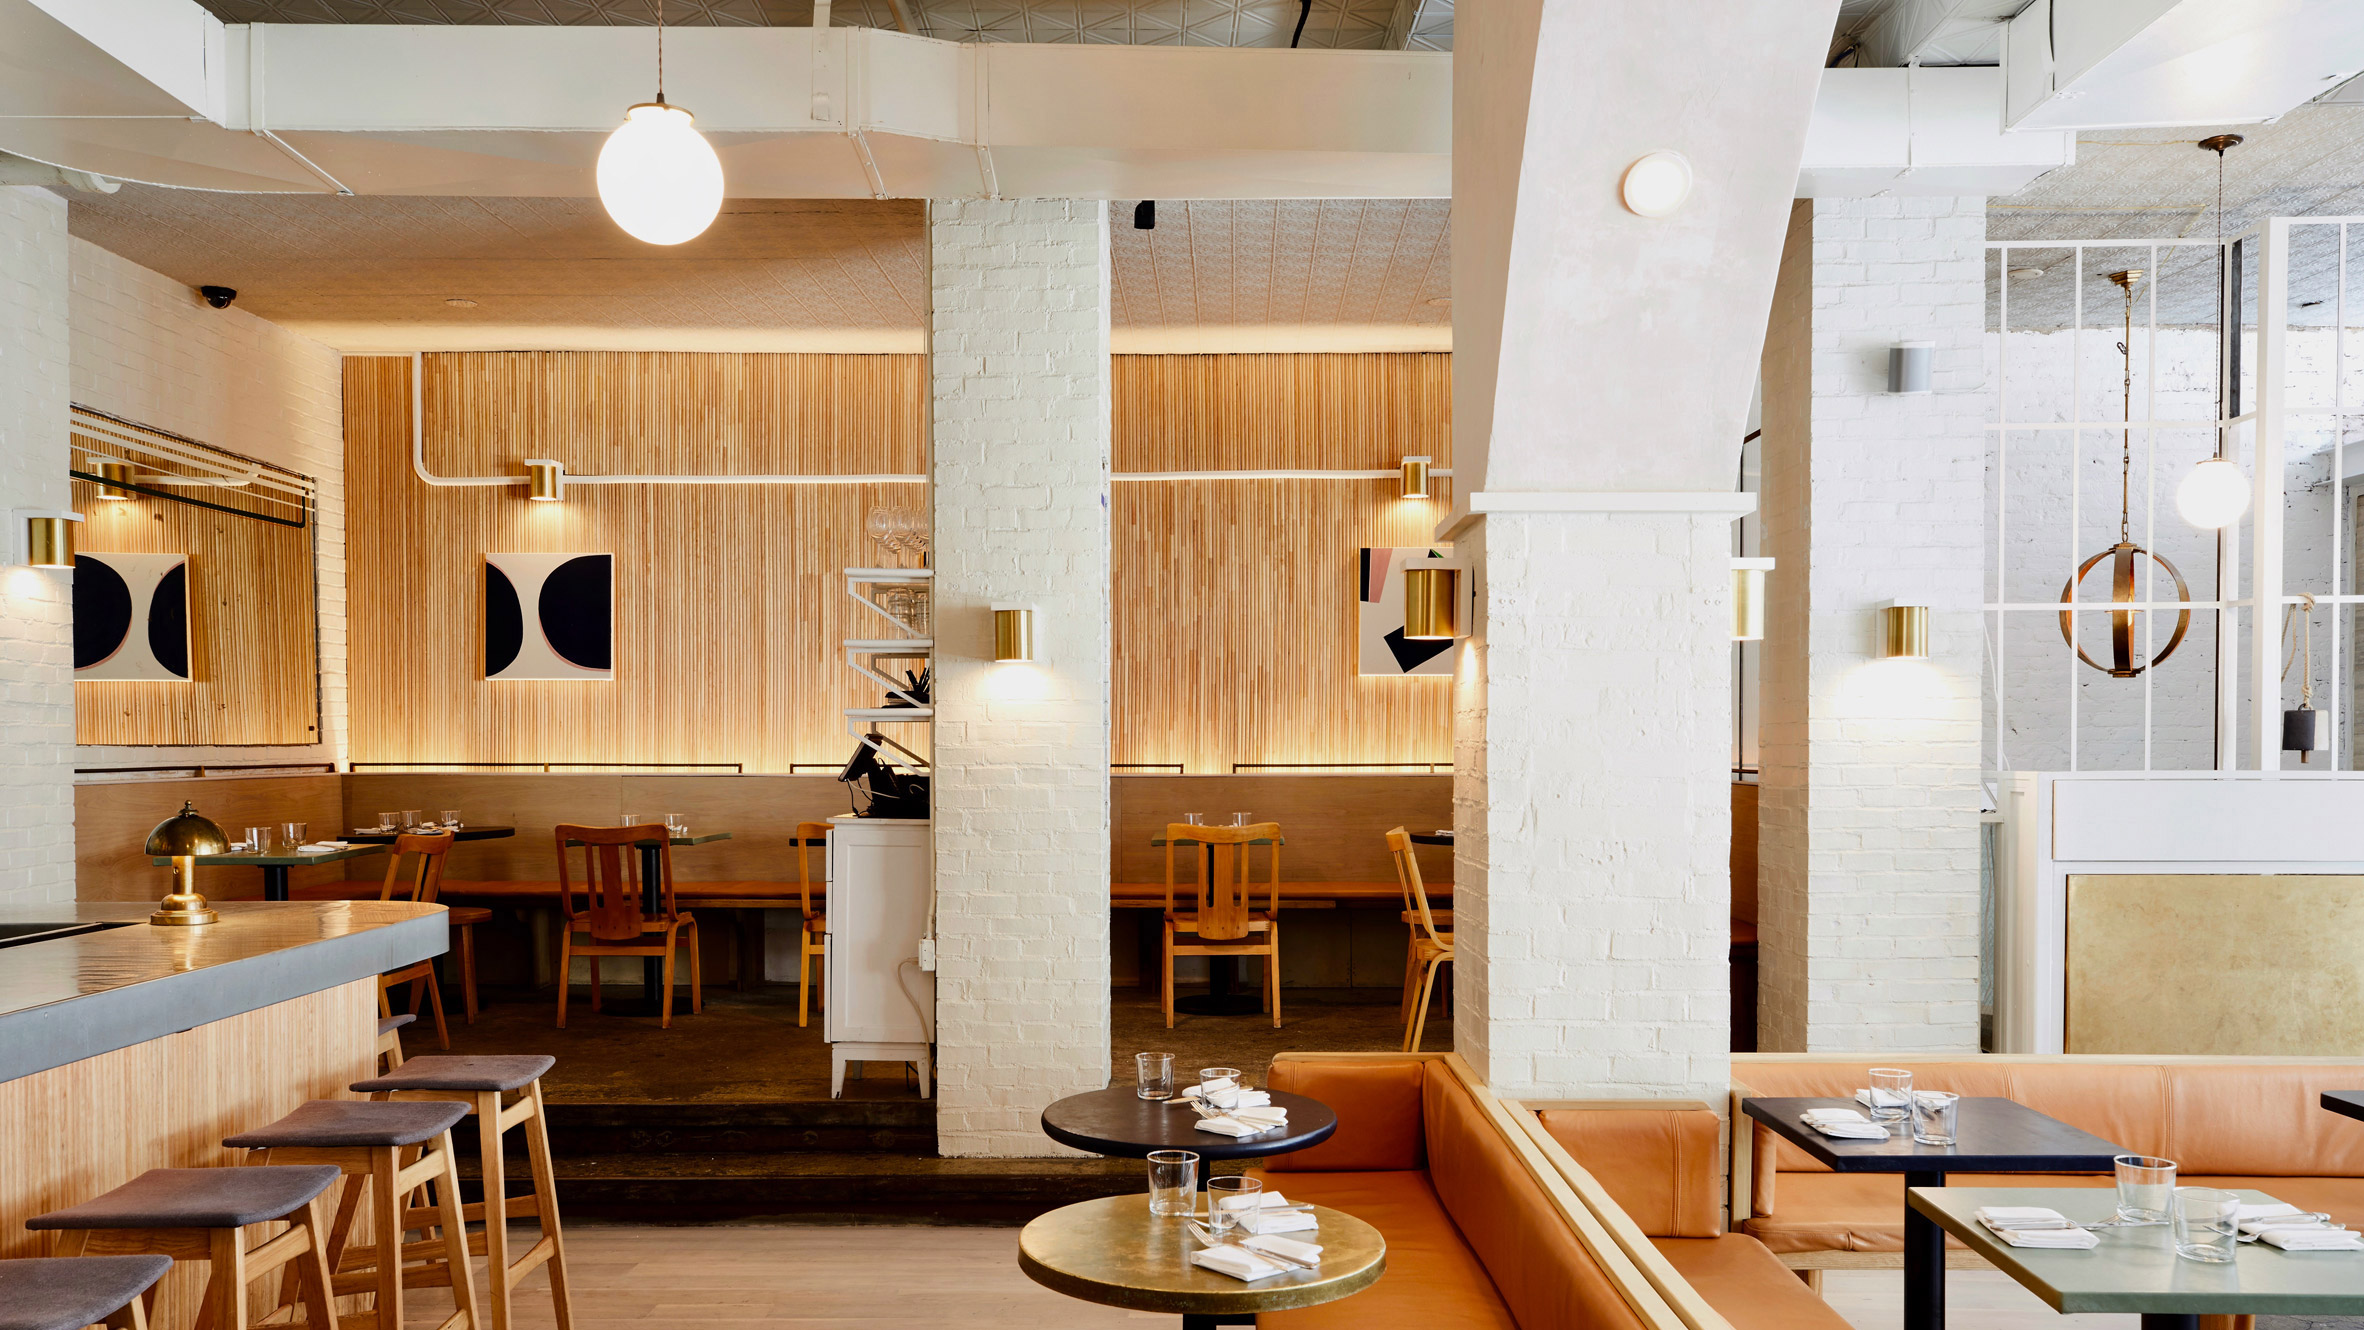 de-maria-the-mp-shift-interiors-restaurants-new-york-city-usa_dezeen_2364_hero.jpg